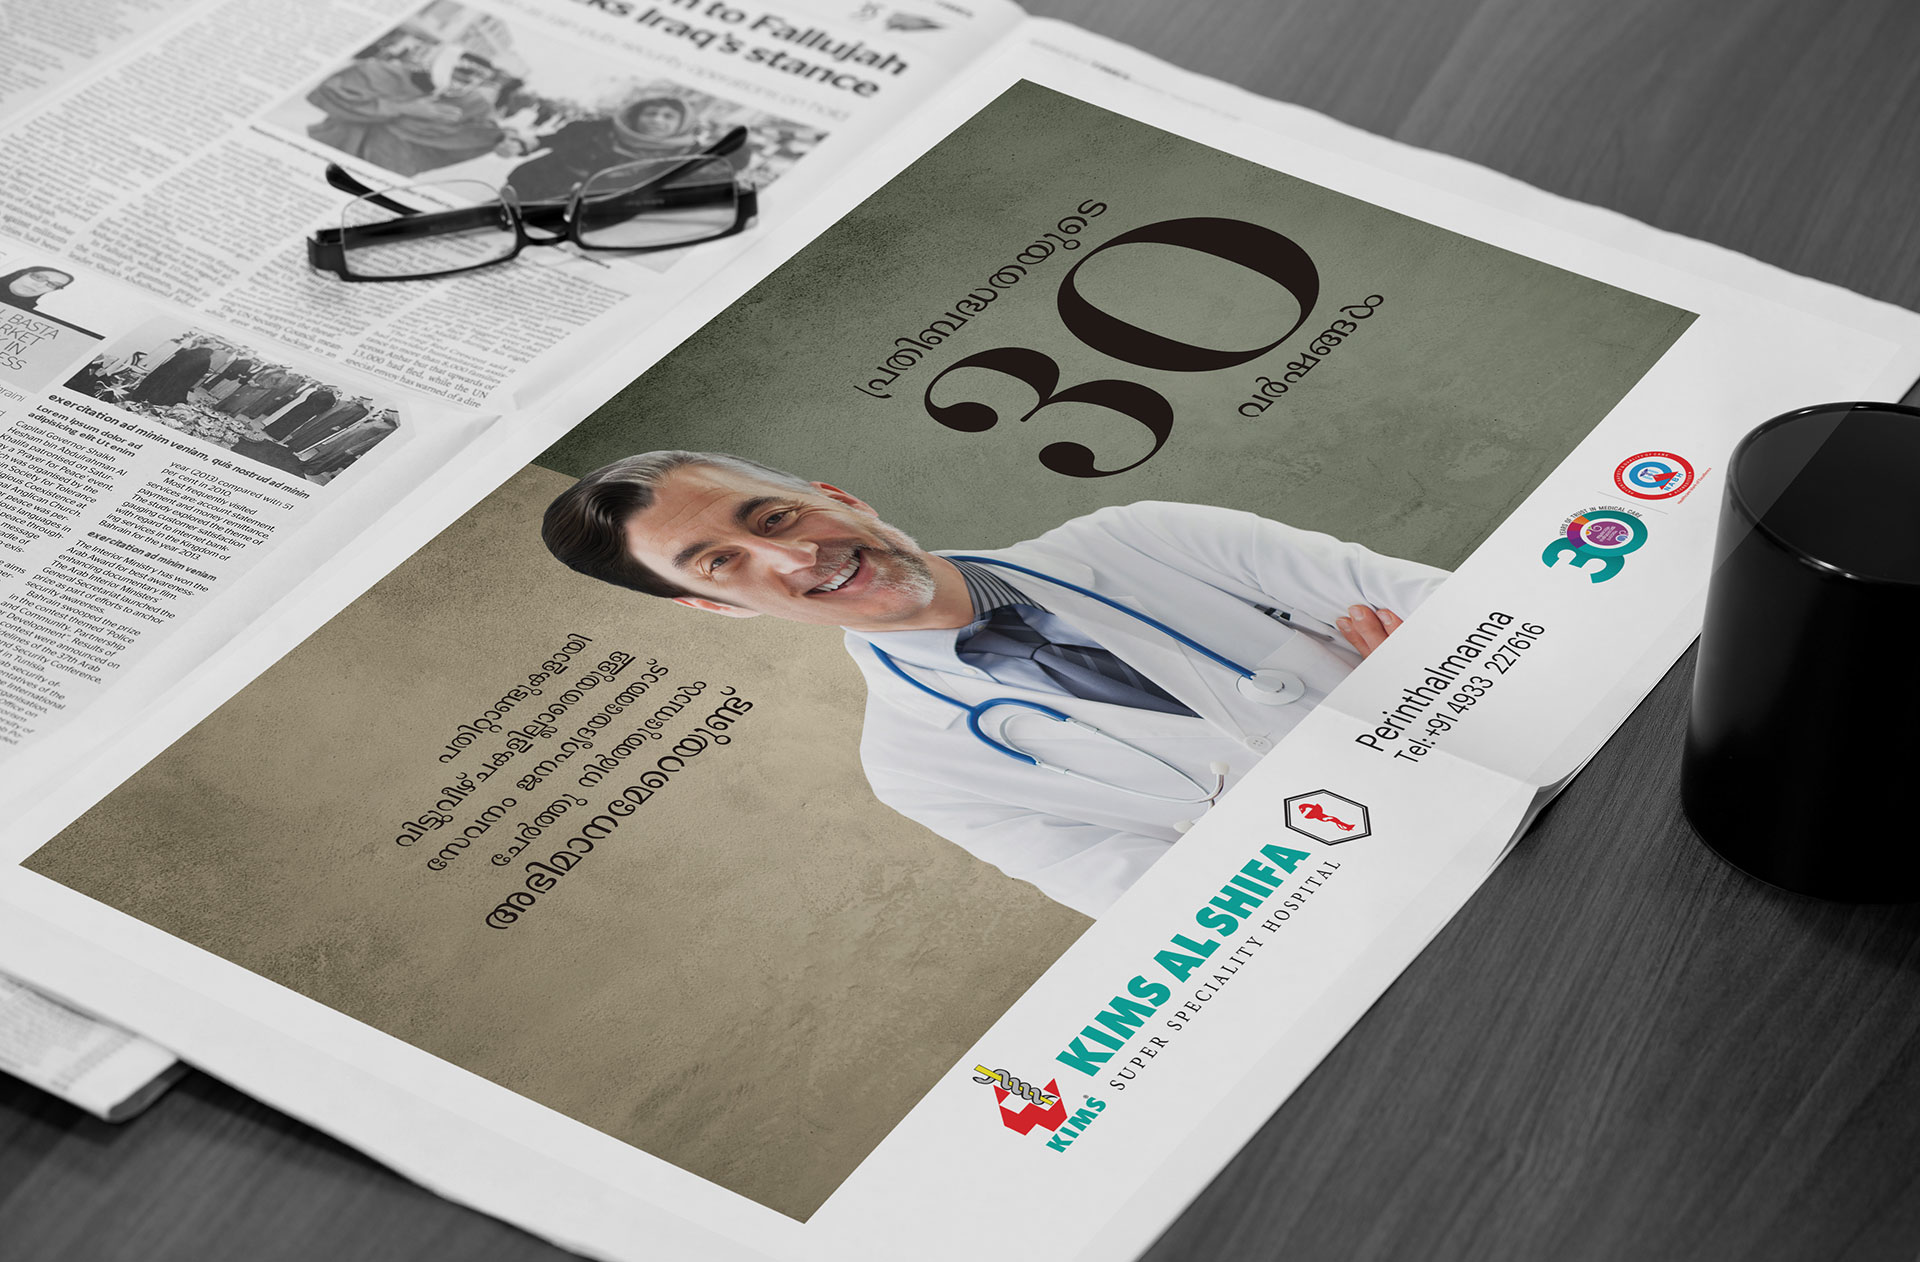 KIMS Al Shifa - 30 years of Responsibility Print advertisement on Newspaper